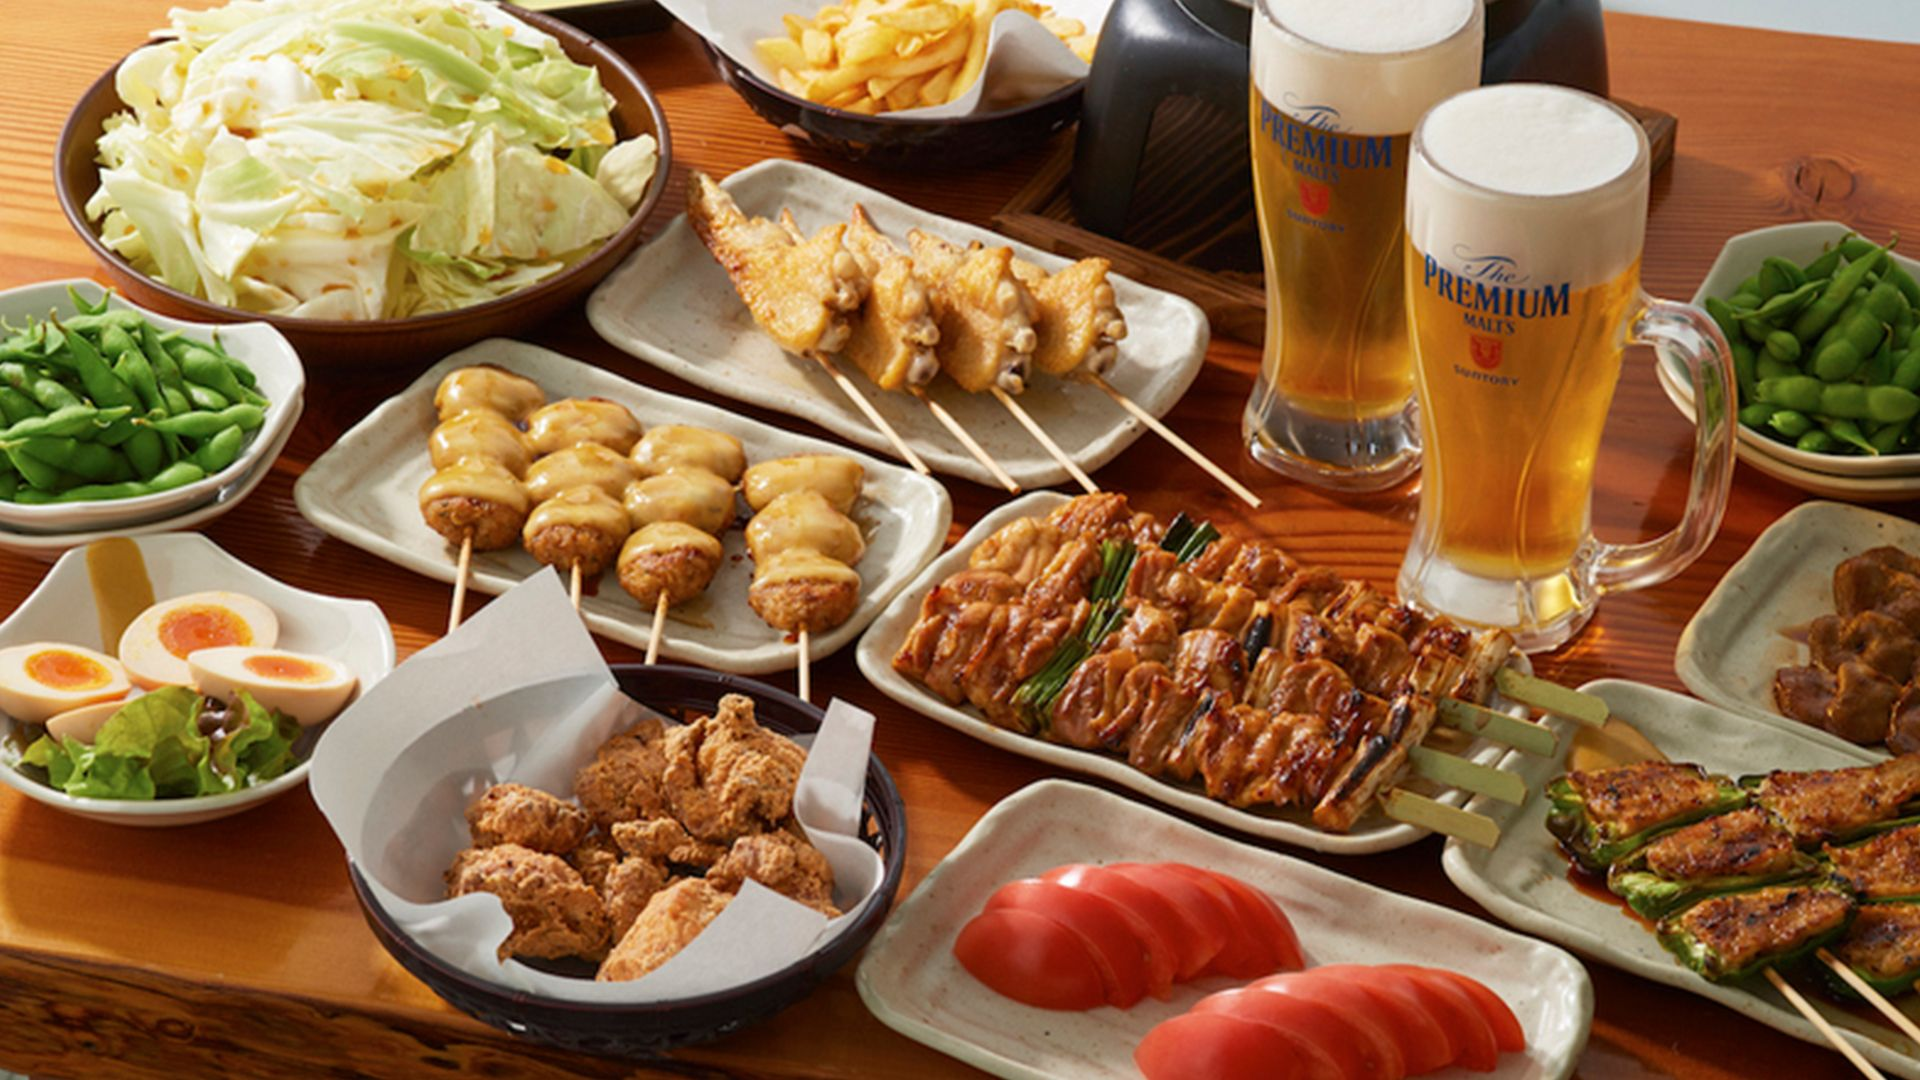 The Best Places And Everything About All You Can Eat Tabehoudai In Japan Restaurant Recipes Food Lunch Buffet